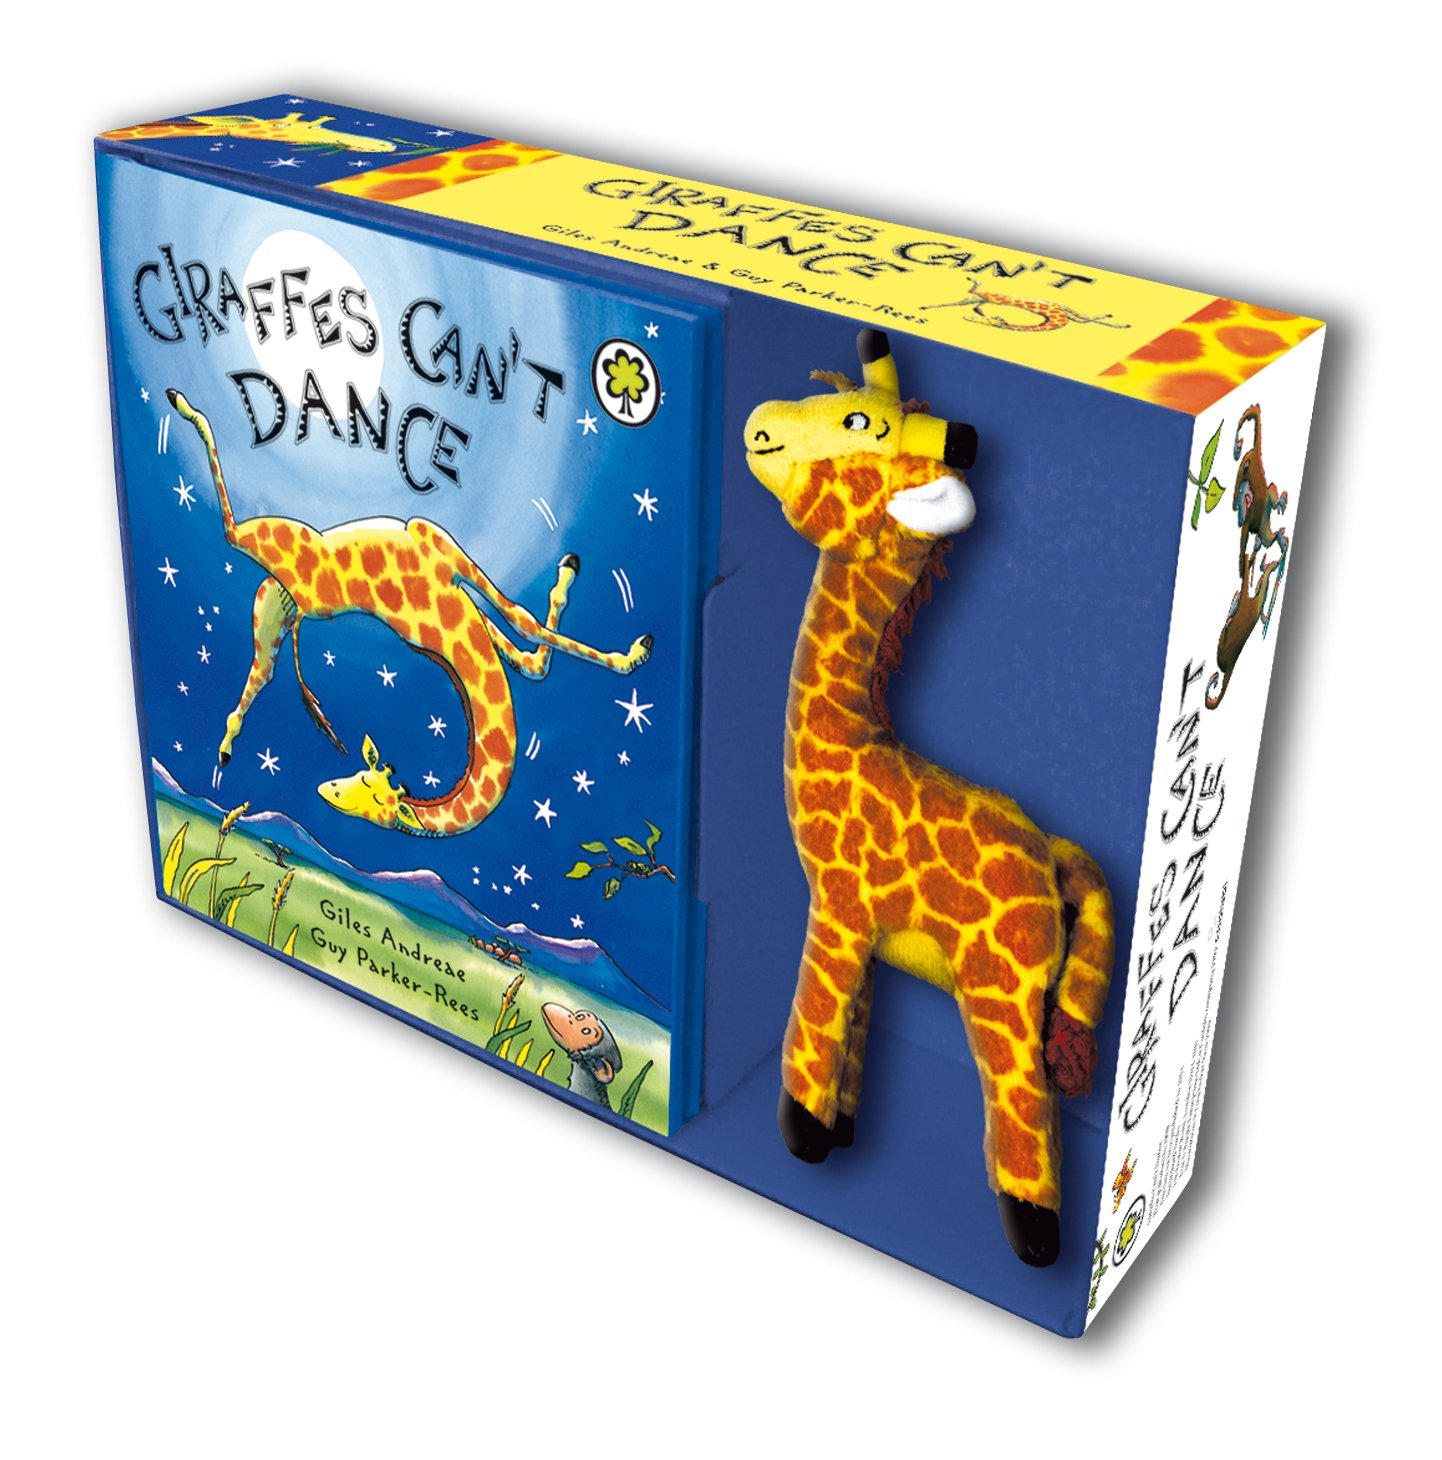 Giraffes Can't Dance: Amazon.co.uk: Giles Andreae, Guy Parker-Rees:  9781408316245: Books